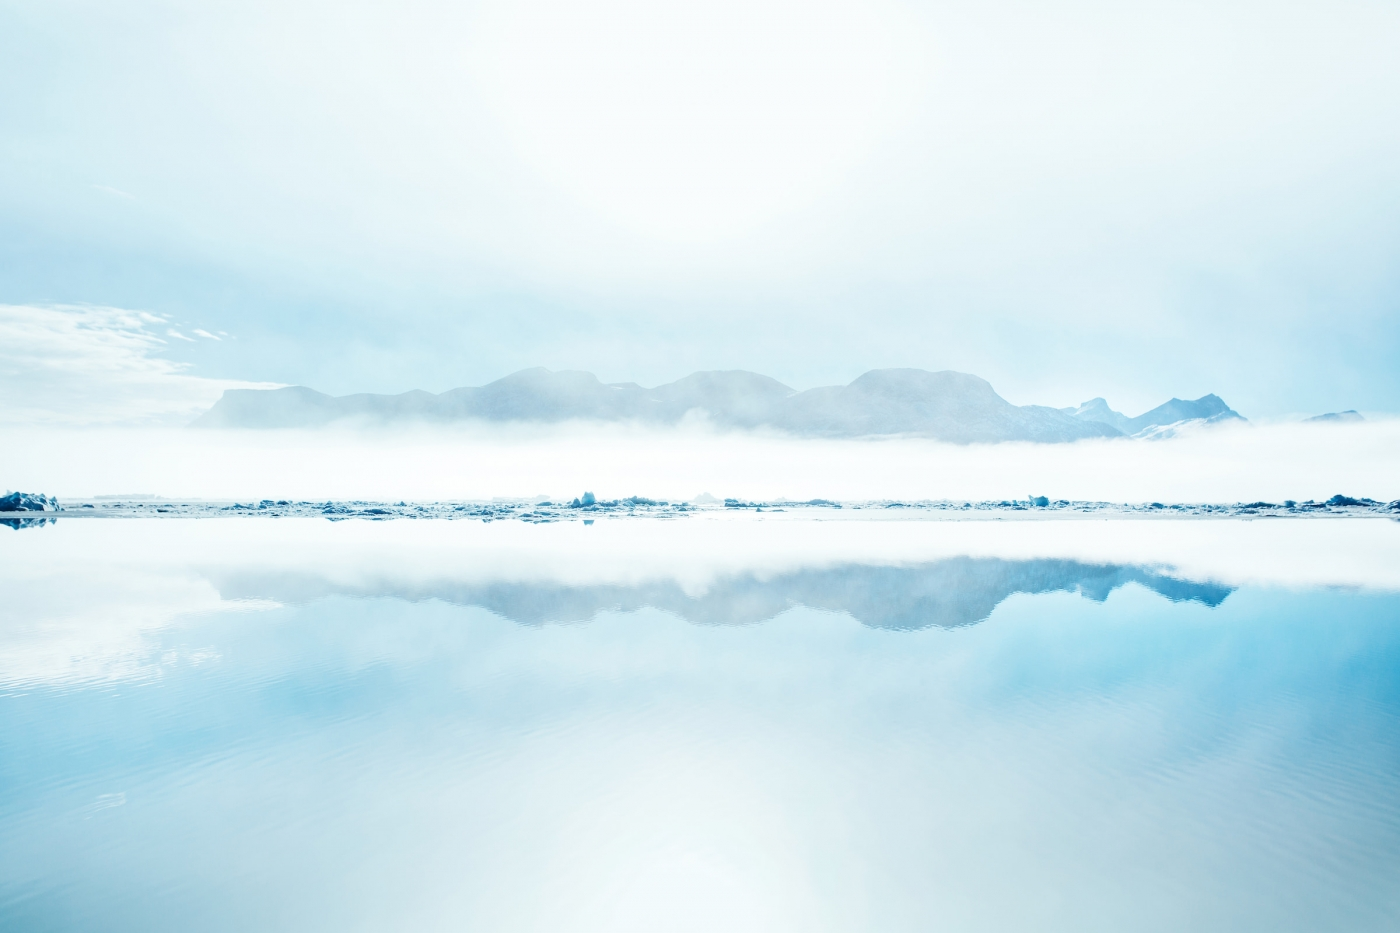 Mountains and fog being mirrored on clear water in the Nuuk fjord in Greenland. Photo by Rebecca Gustafsson - Visit Greenland